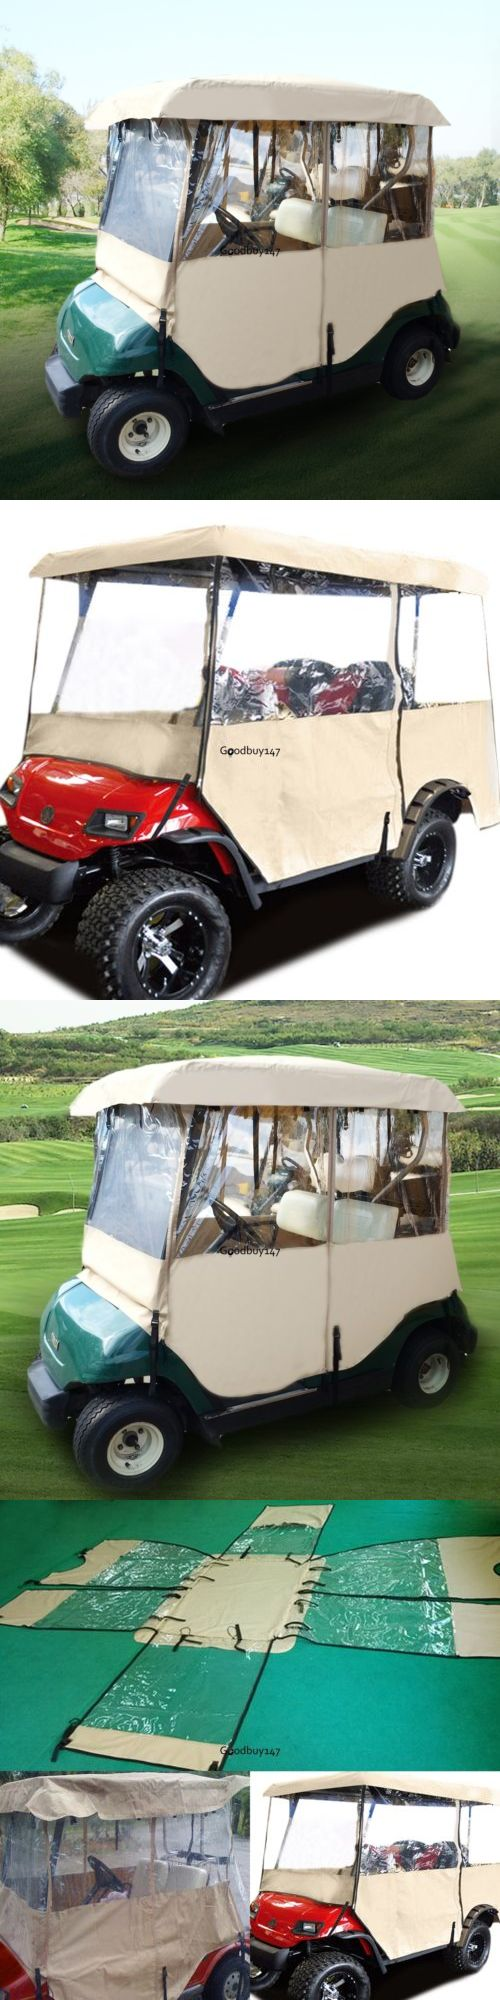 Push-Pull Golf Carts 75207: Golf Cart Rain Cover Enclosure For Club Car 2 Person Yamaha Precedent Ez Go -> BUY IT NOW ONLY: $54.69 on eBay!